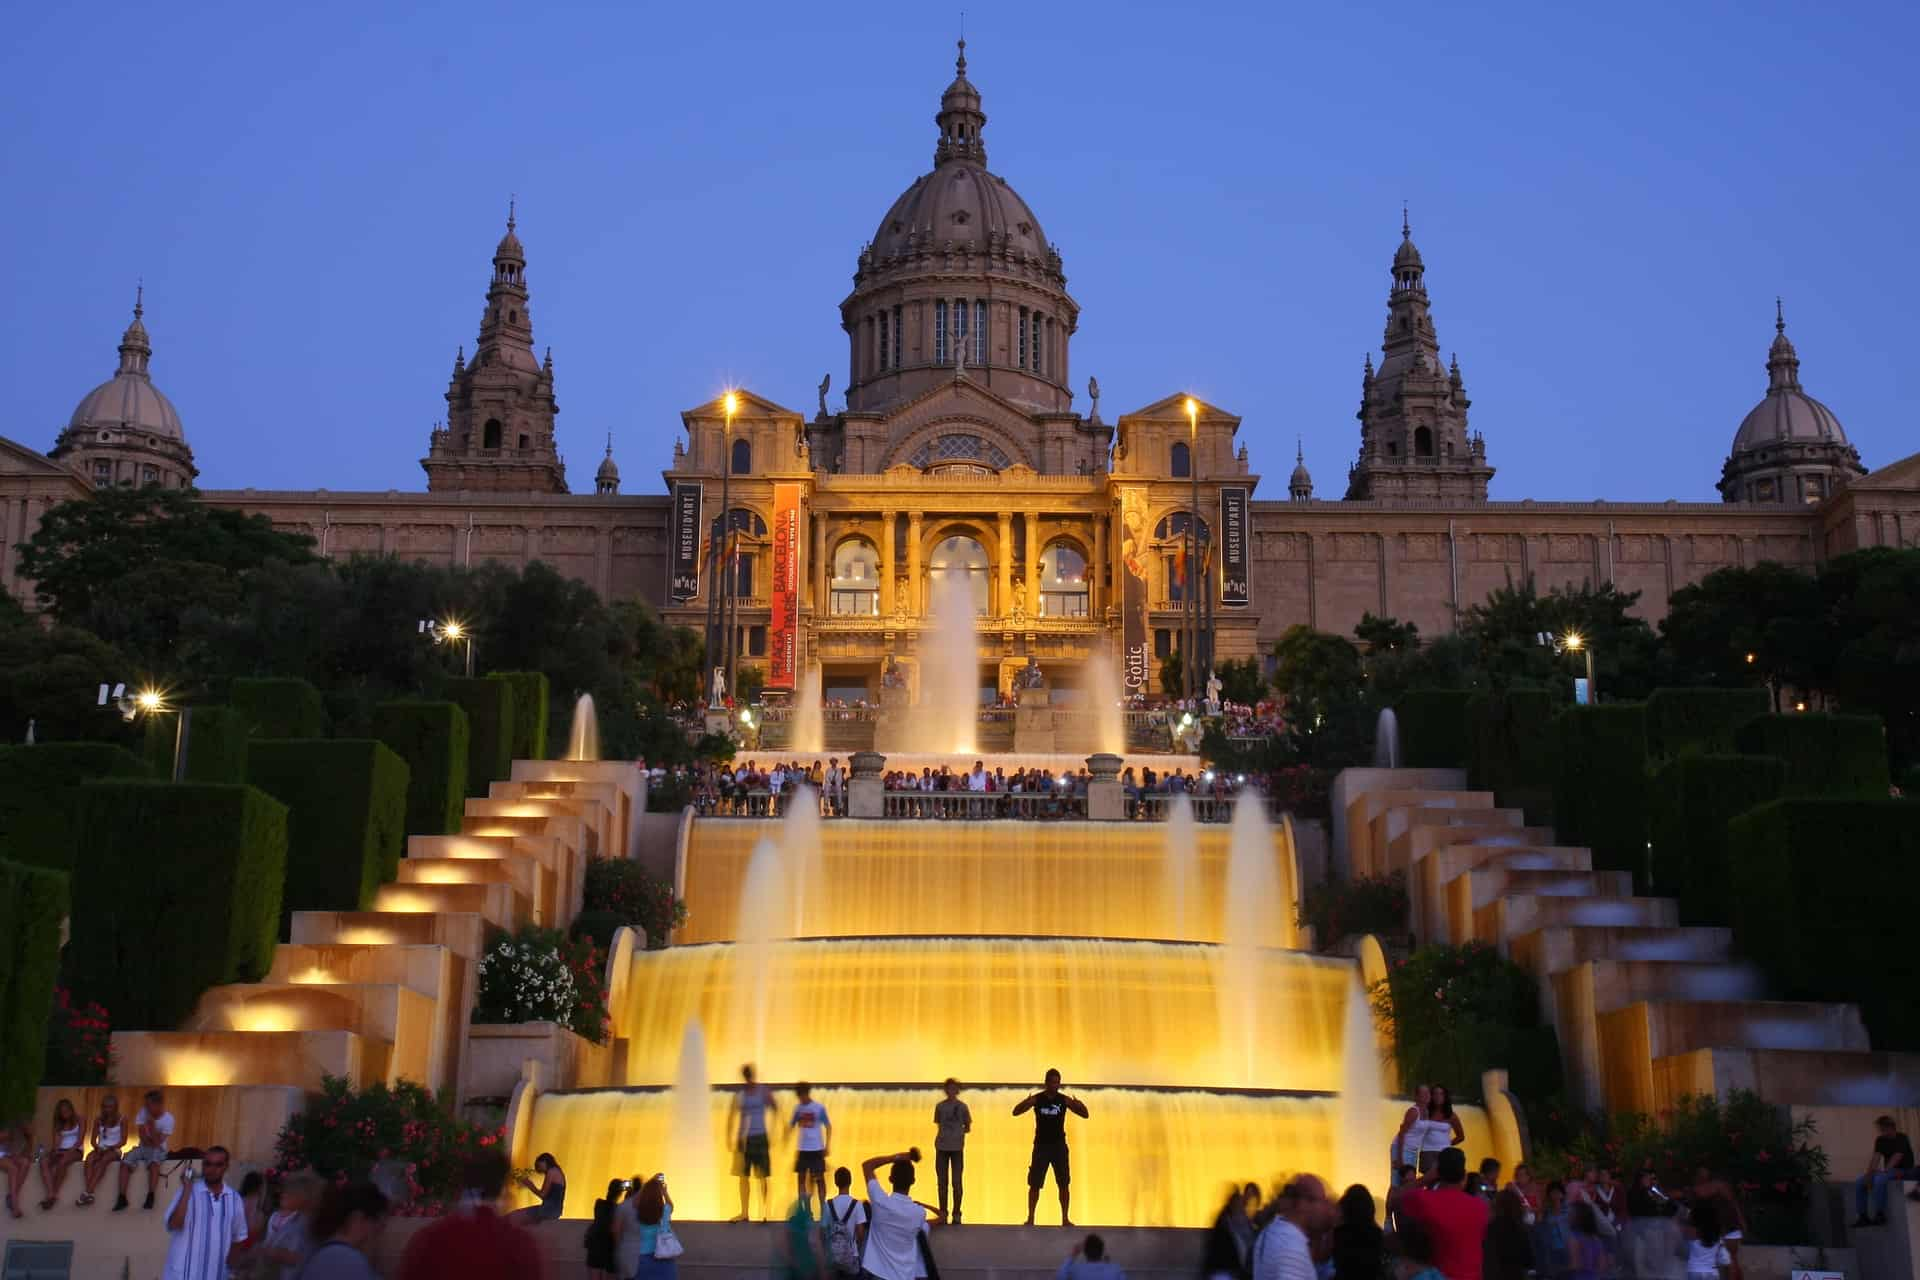 Catalonian National Art Museum (mnac)